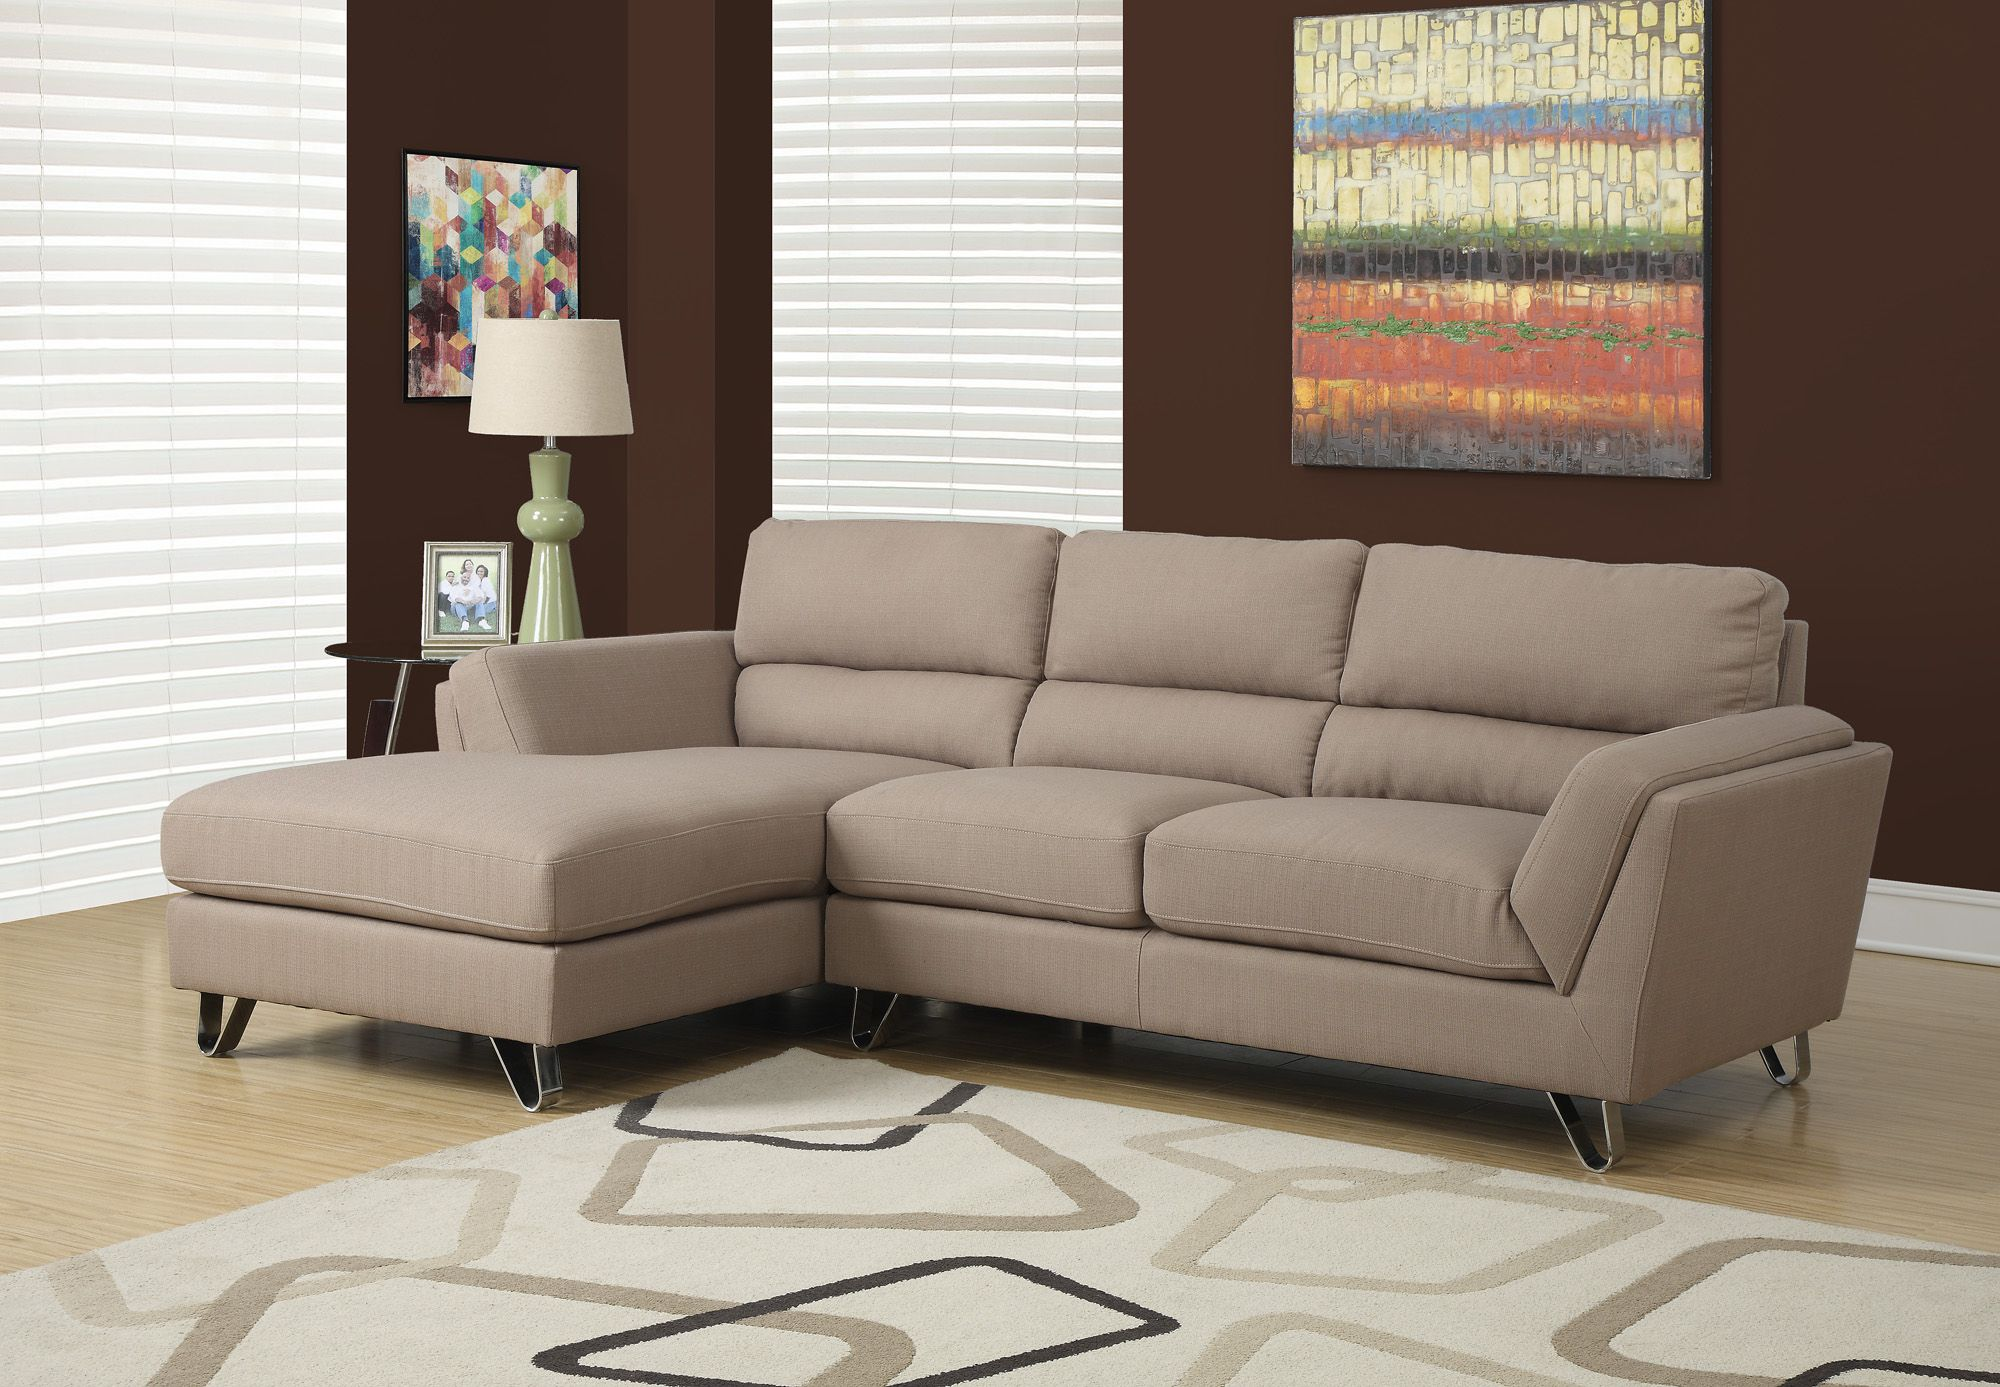 Awesome Light Brown Sofa Lounger Caraccident5 Cool Chair Designs And Ideas Caraccident5Info